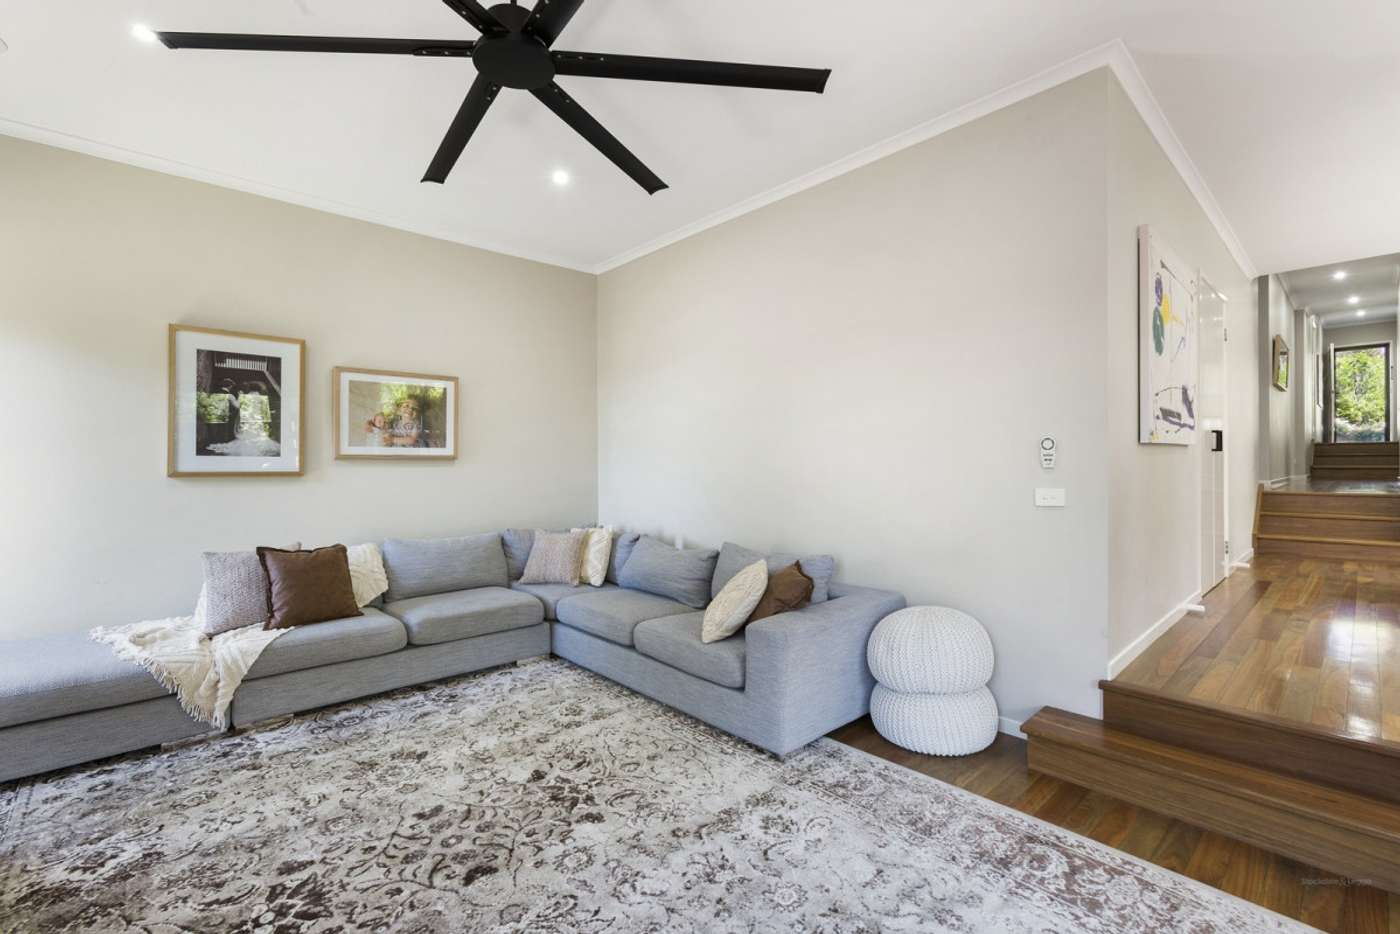 Fifth view of Homely house listing, 7 Park Edge Tce, Portarlington VIC 3223